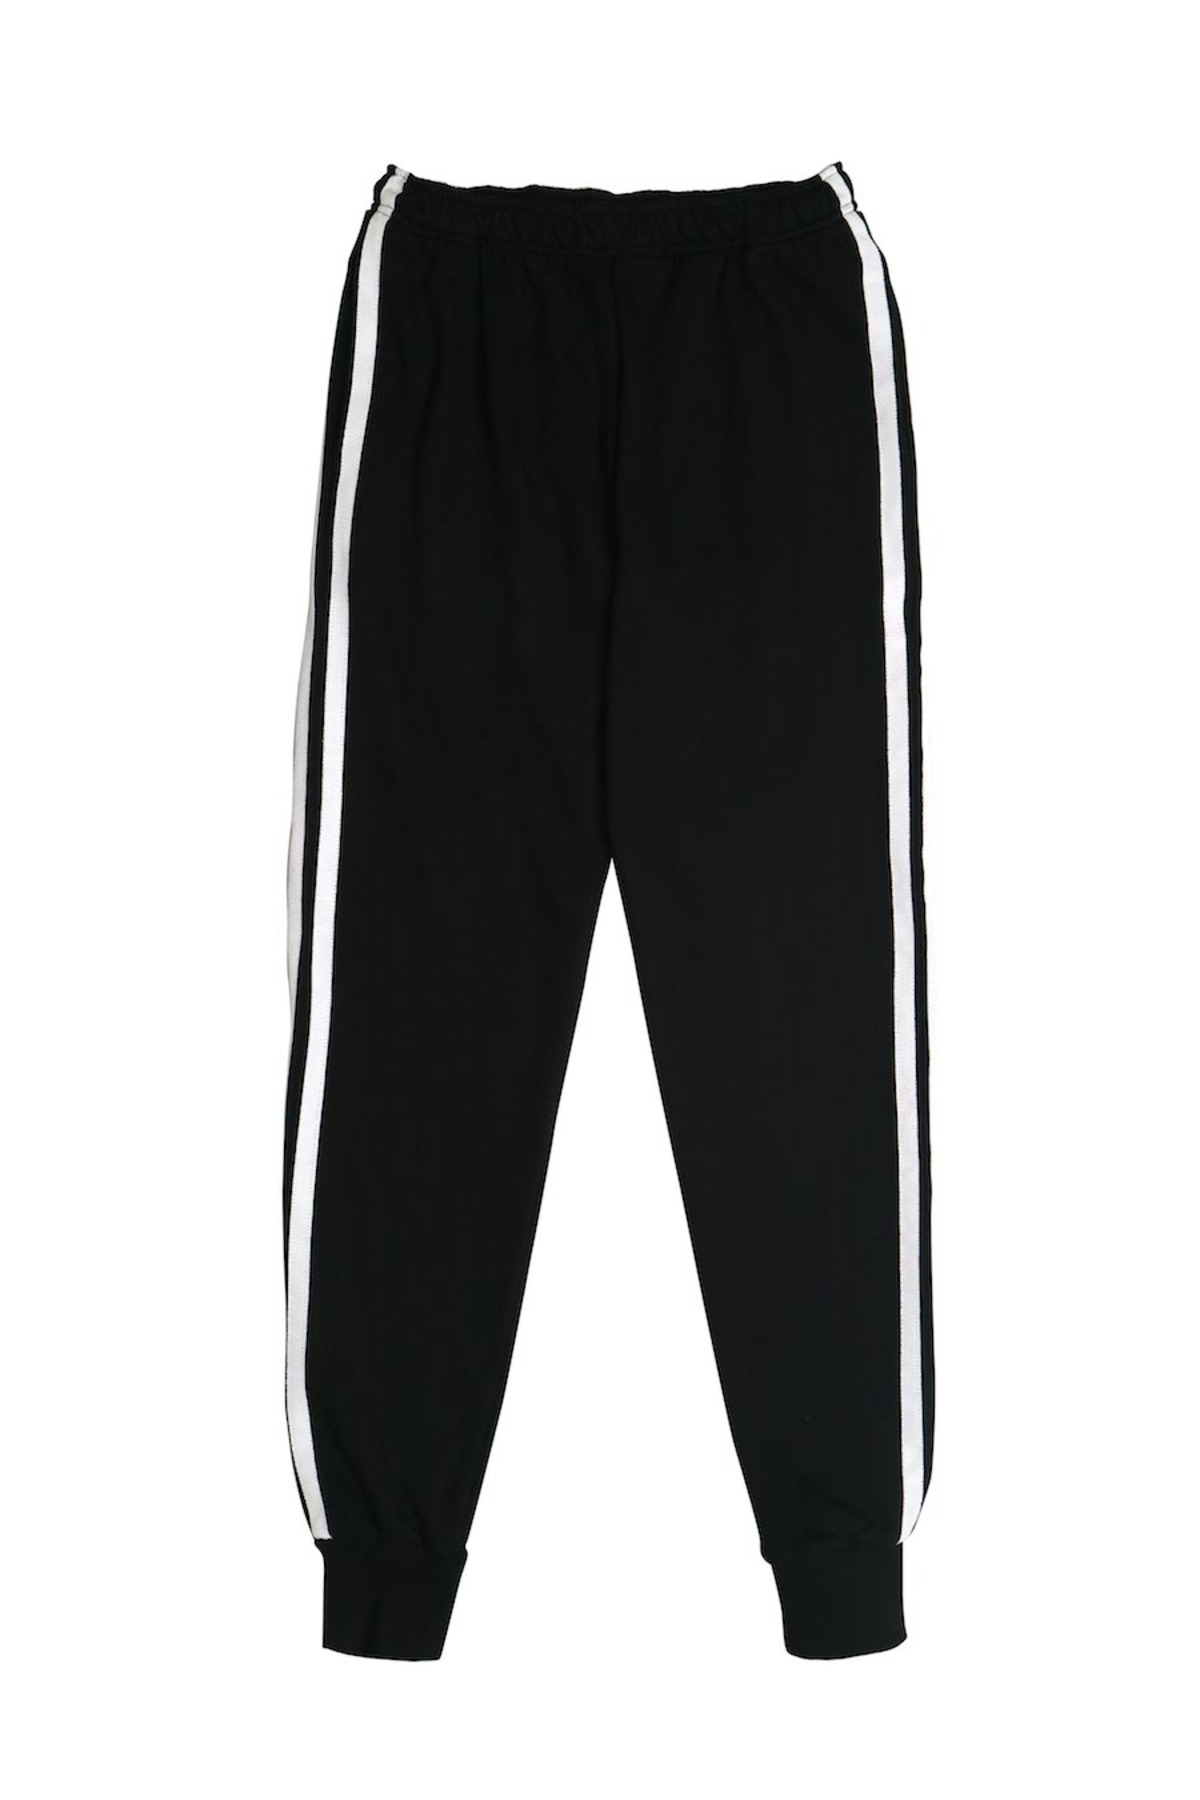 BLACK WHITE JOG PANTS